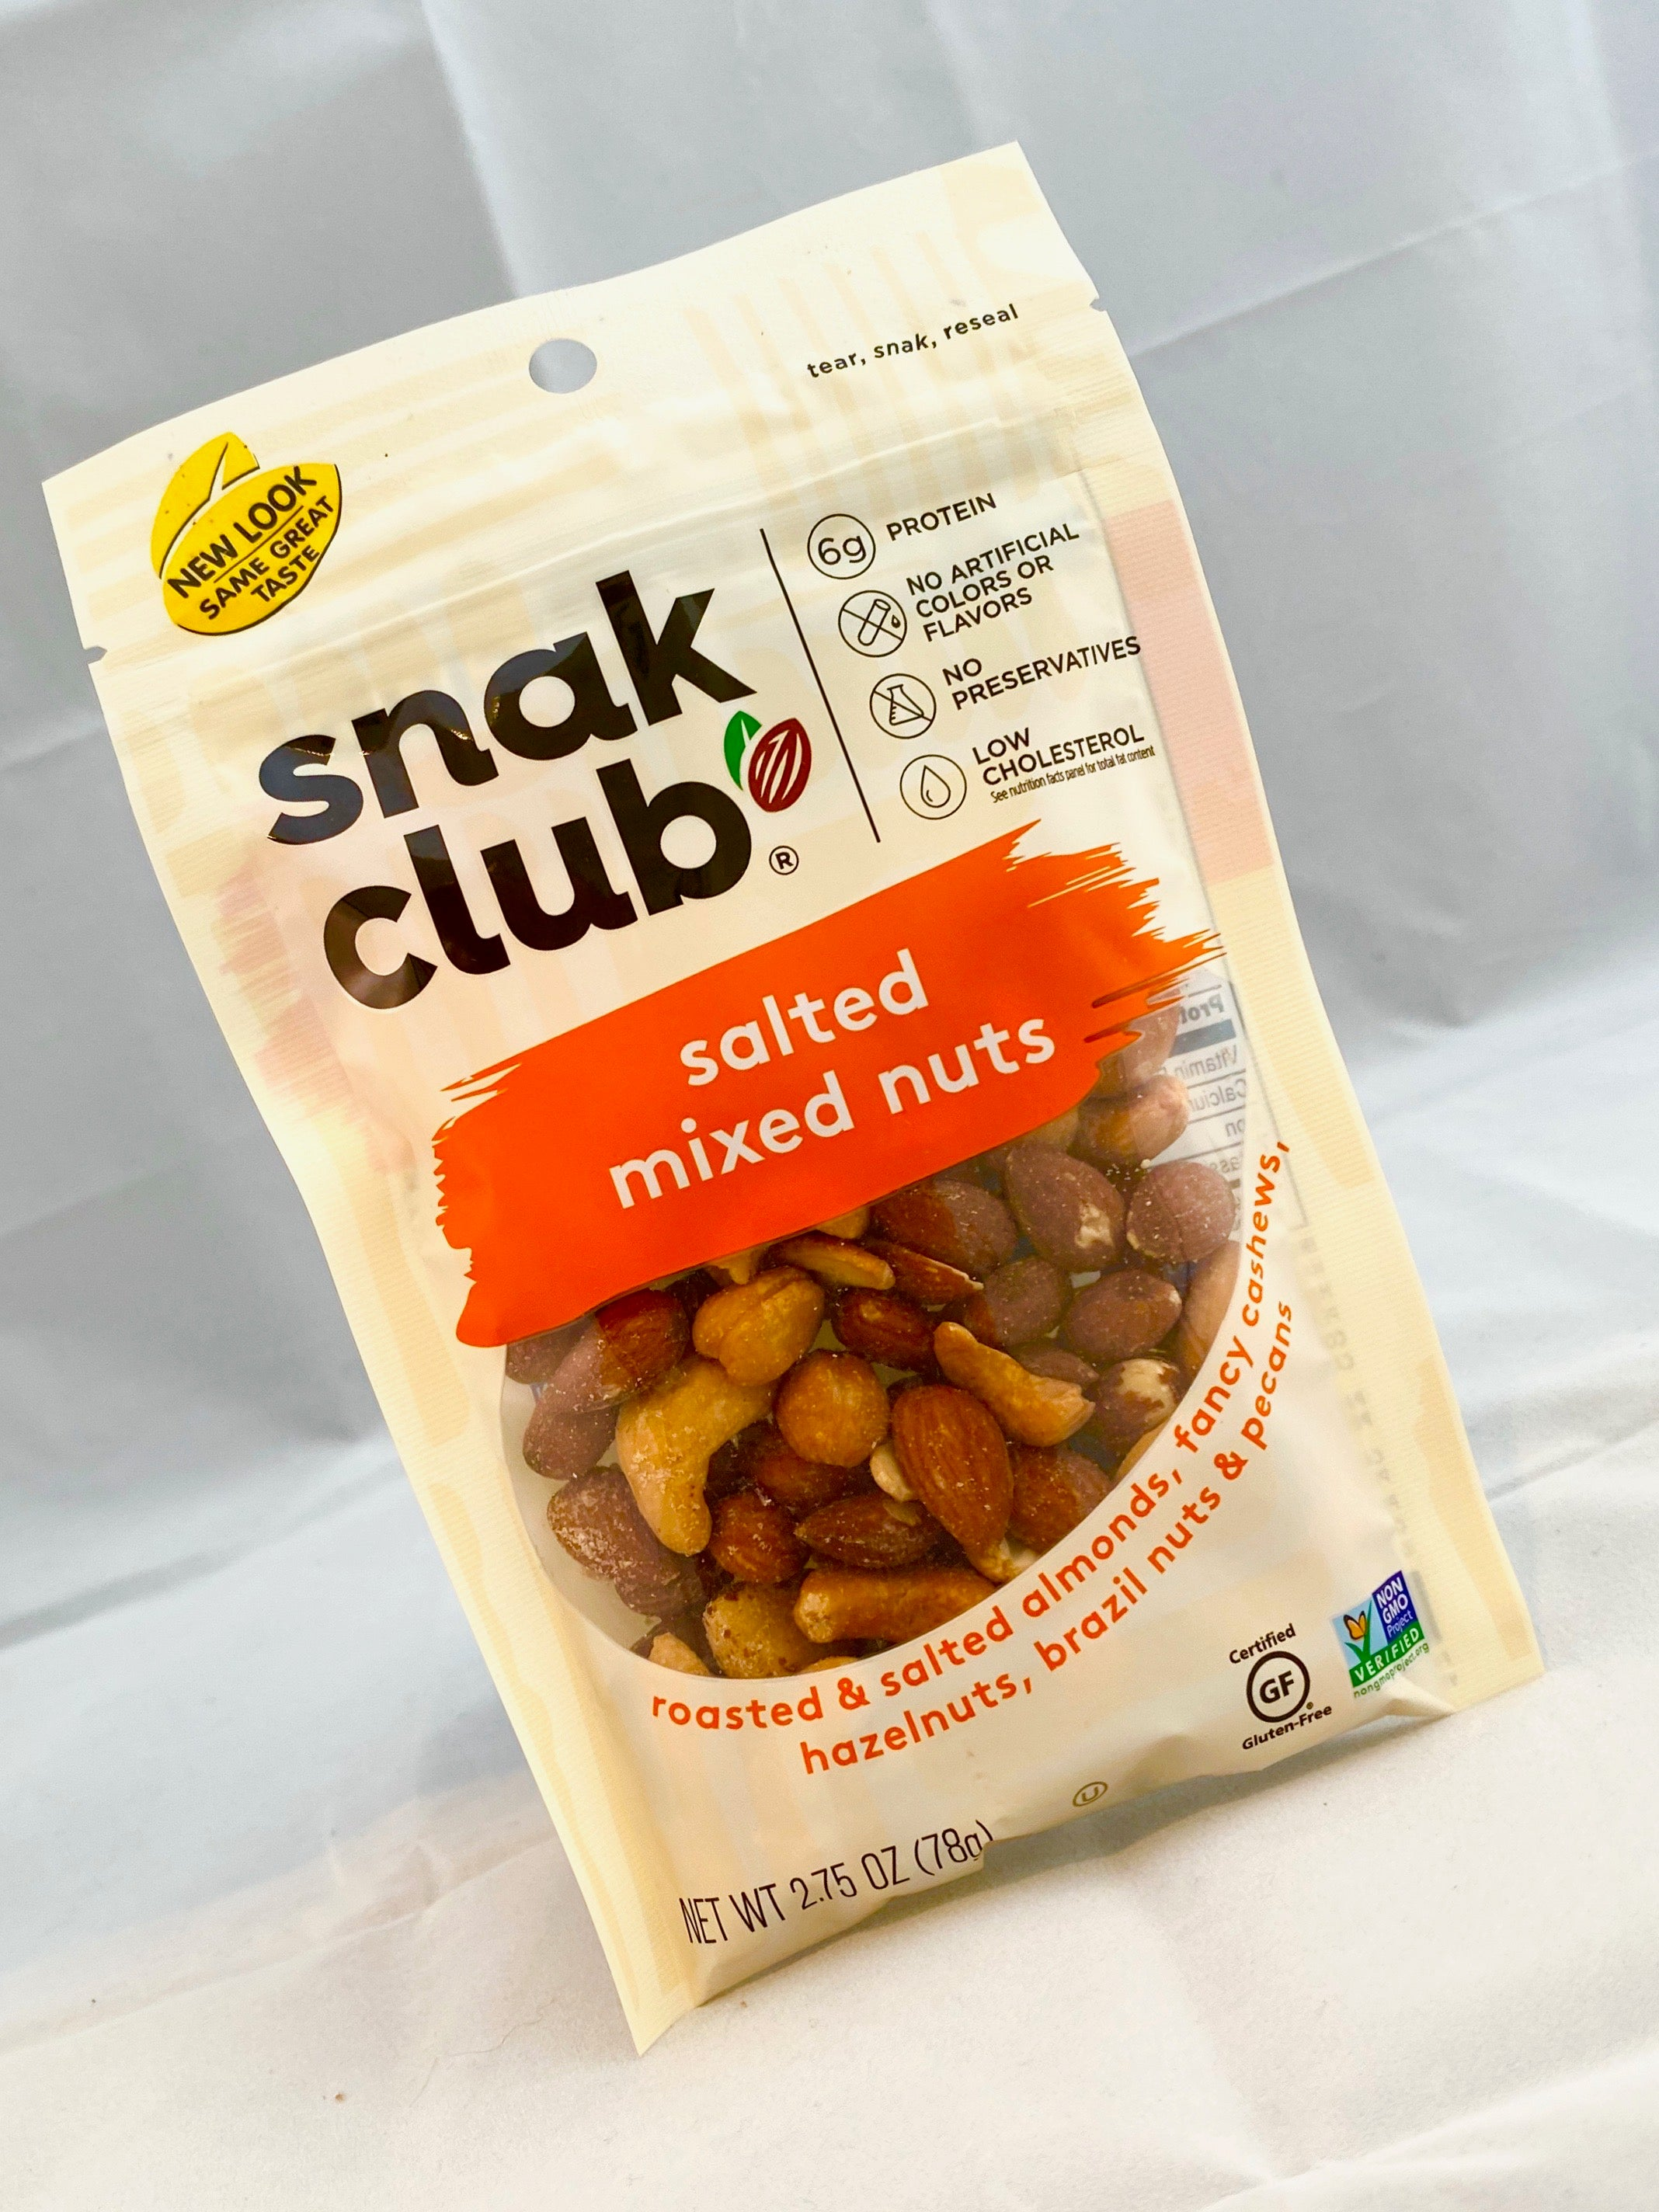 Snak Club Salted Mixed Nuts